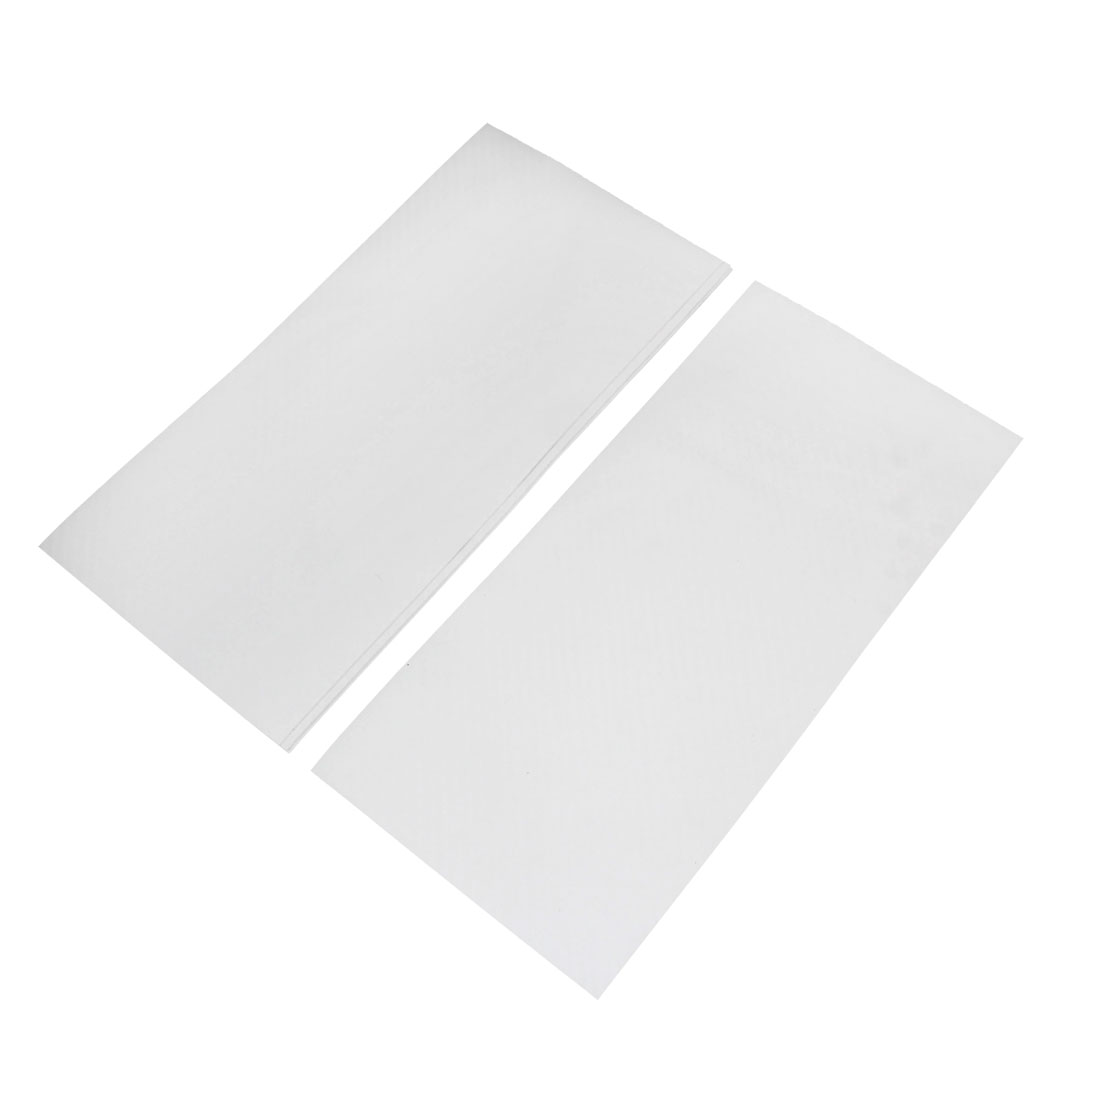 5pcs 300 x 140mm Self Adhesive Carbon Fiber Protective Film Sticker White for Car